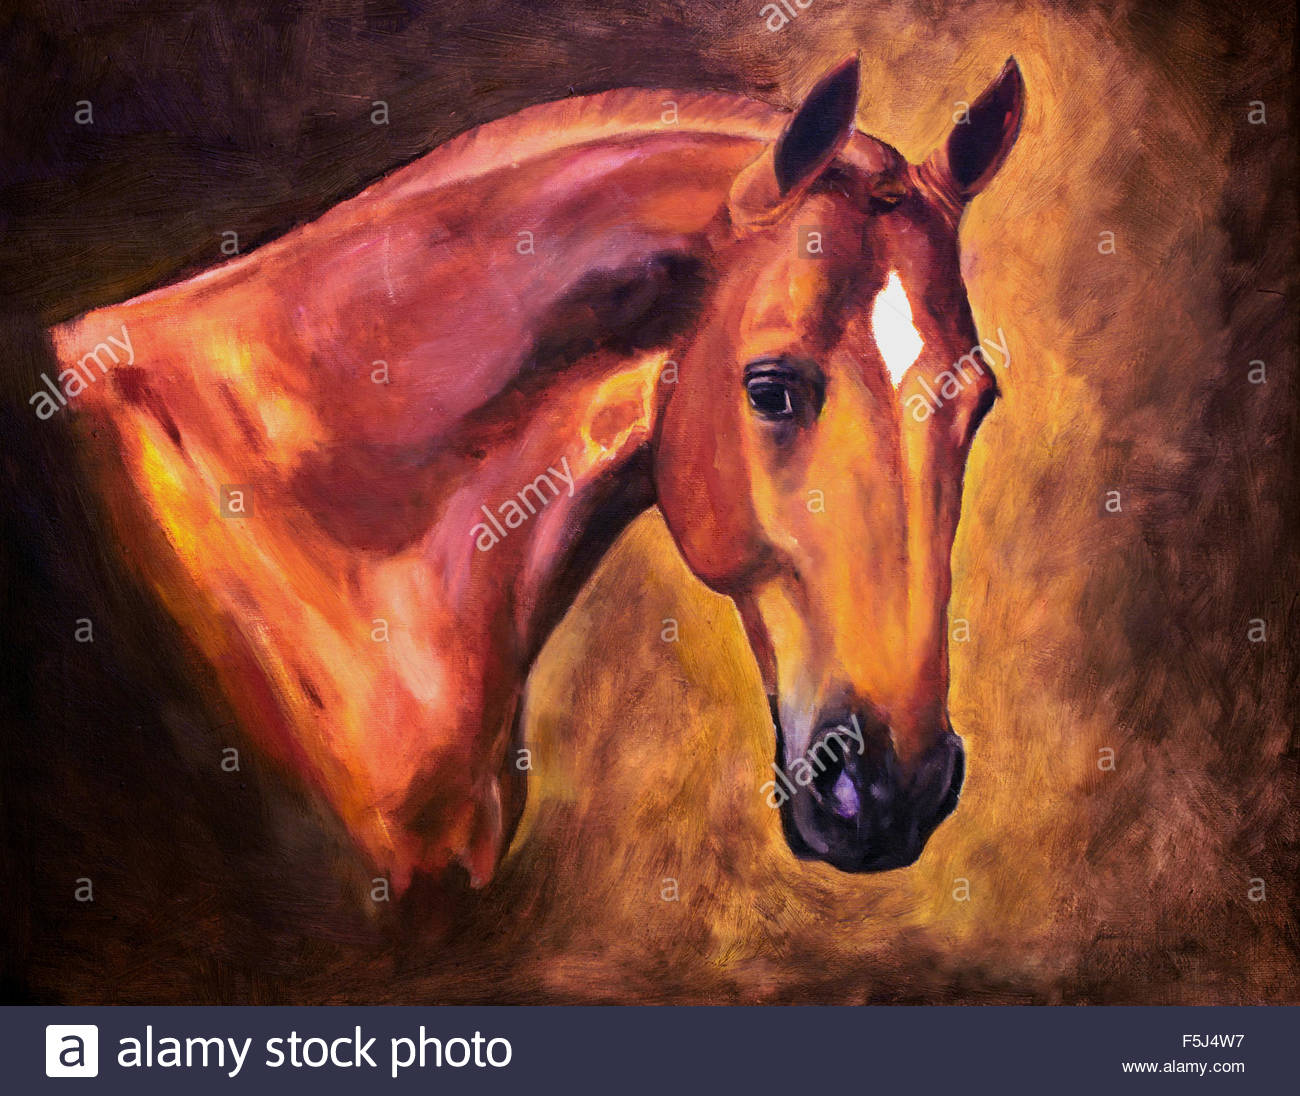 Horse head oil painting Stock Photo, Royalty Free Image ...